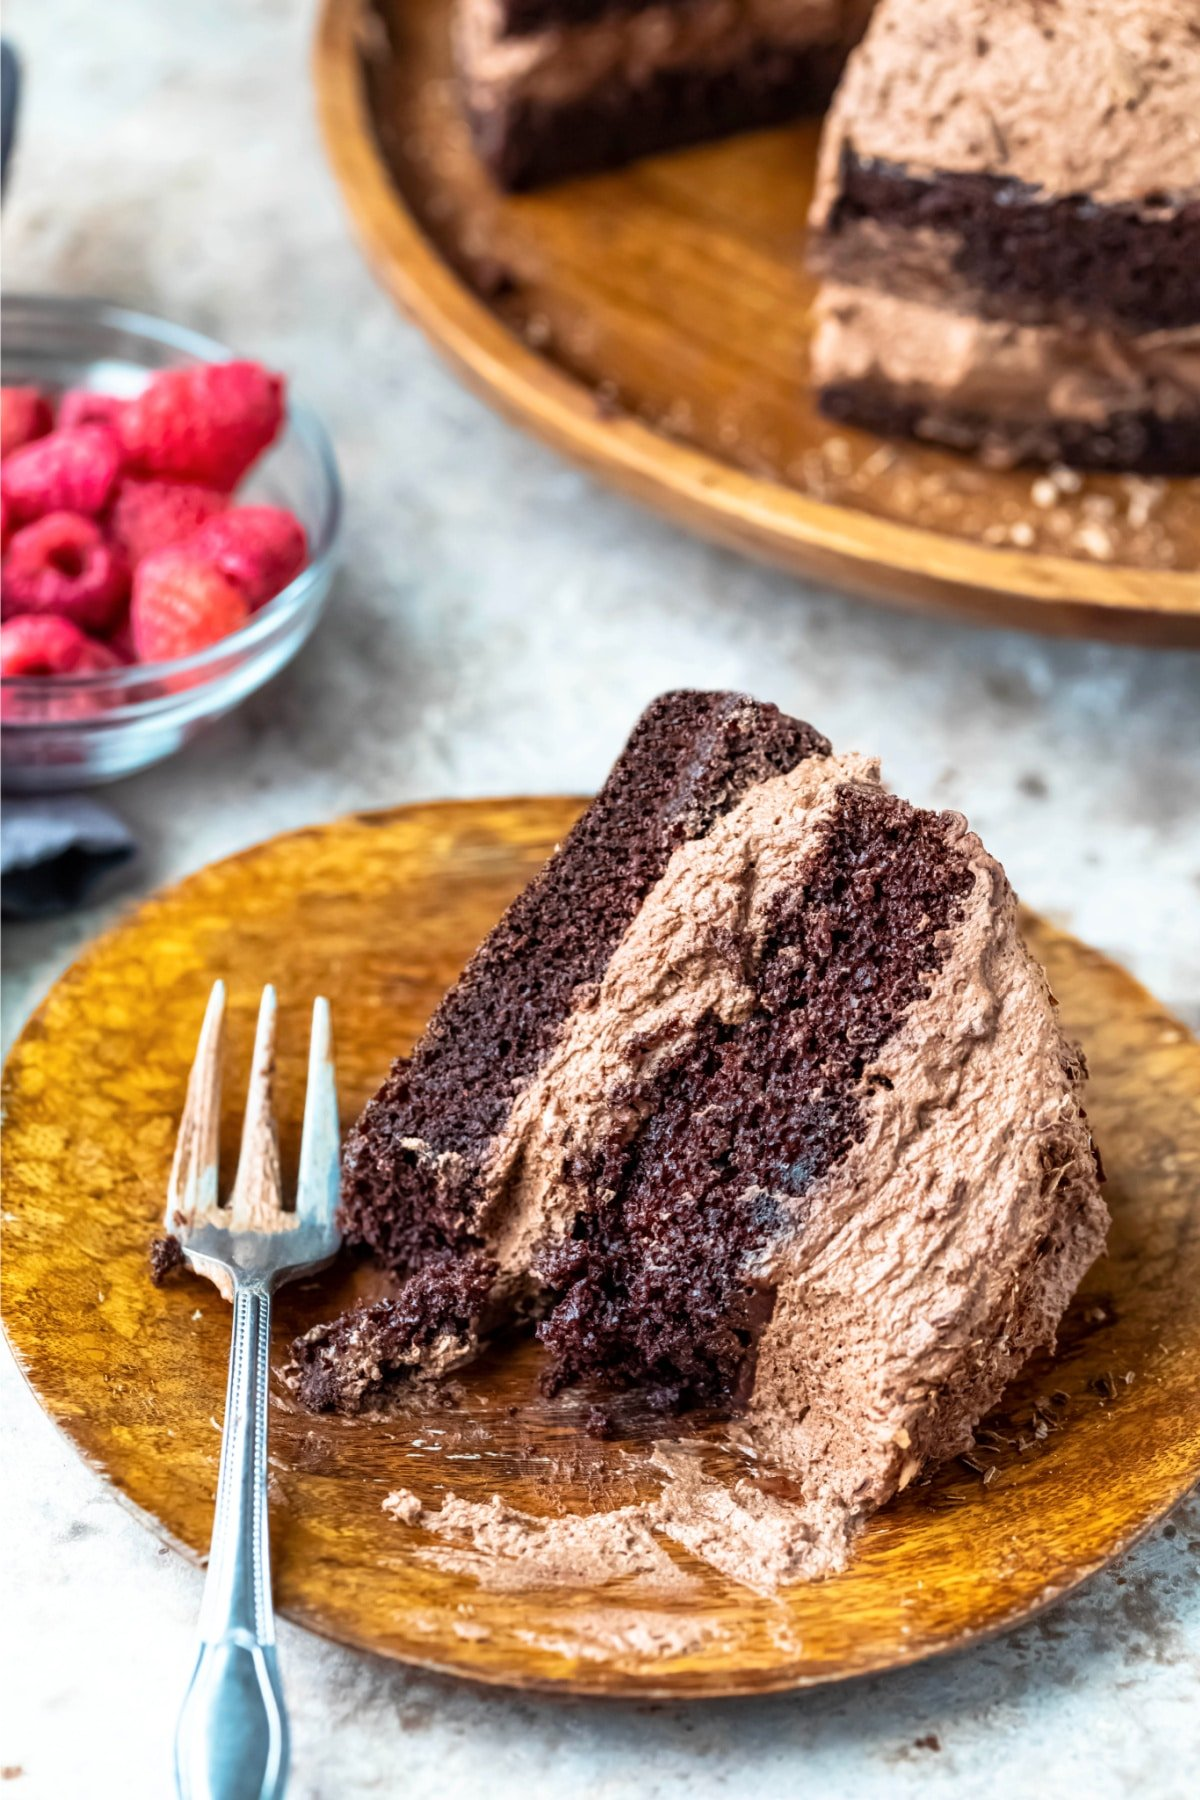 Slice of chocolate brownie cake with a bite missing